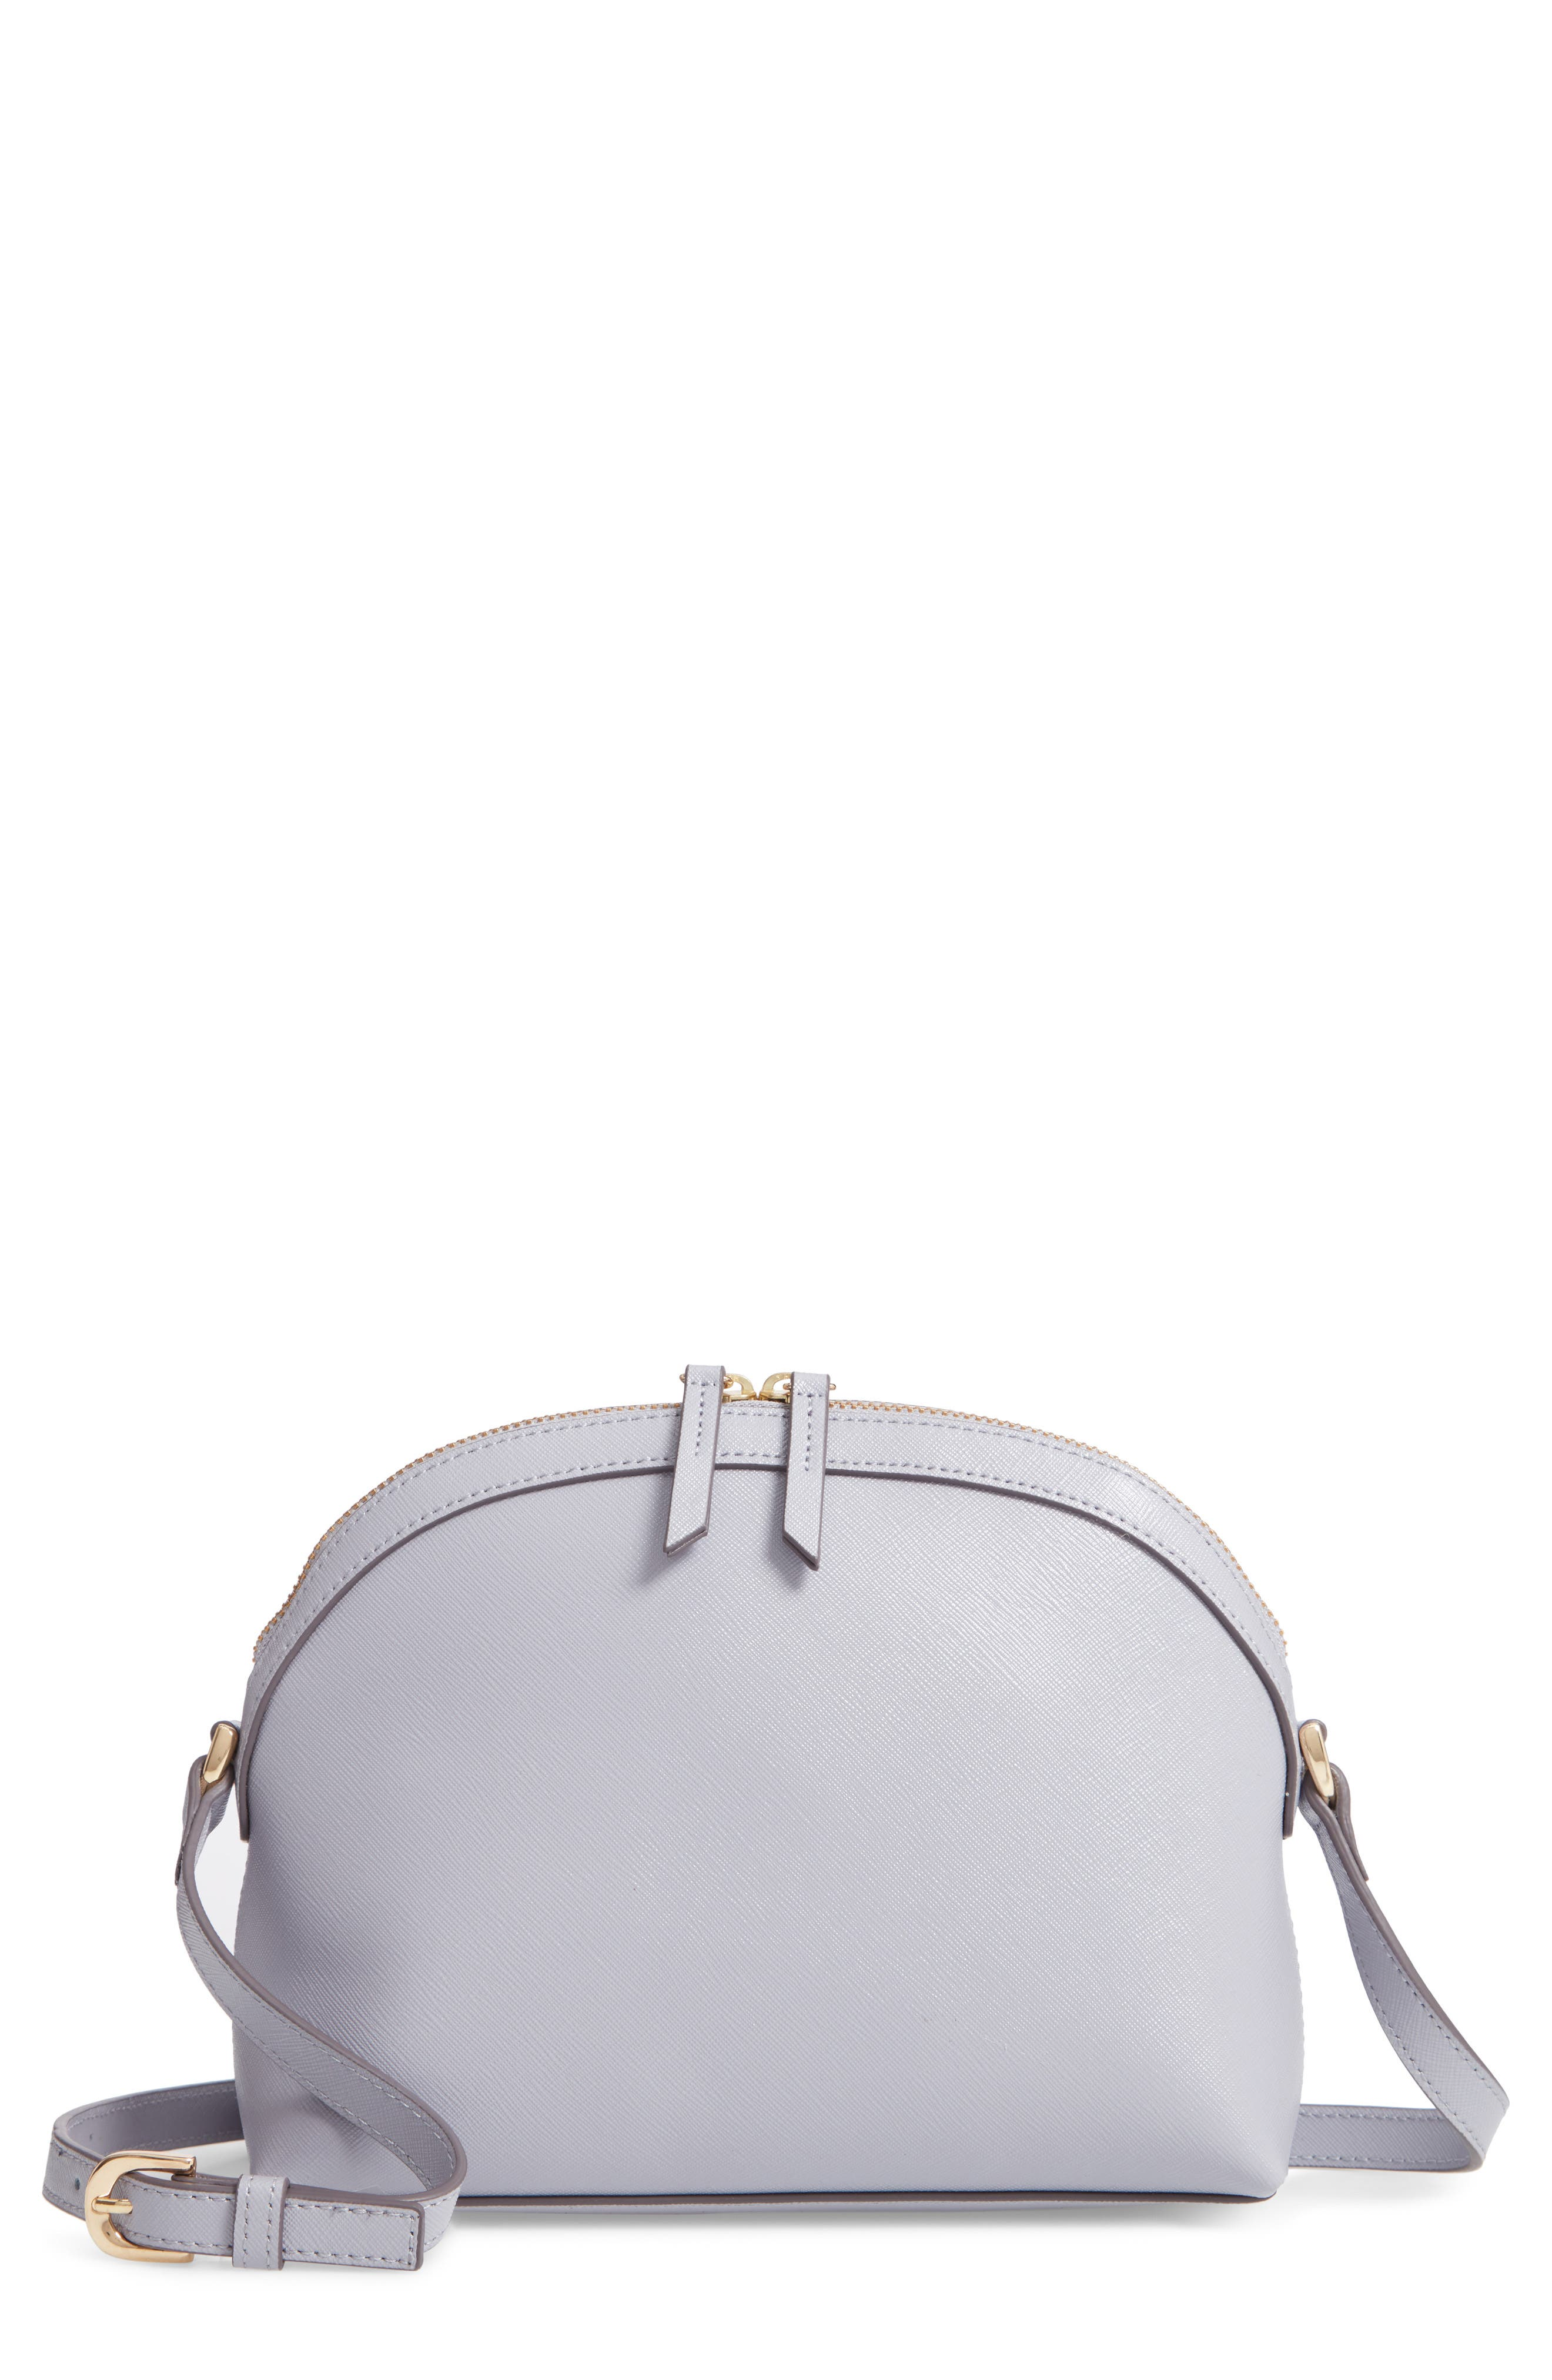 Isobel Half Moon Leather Crossbody Bag,                         Main,                         color, GREY LILAC